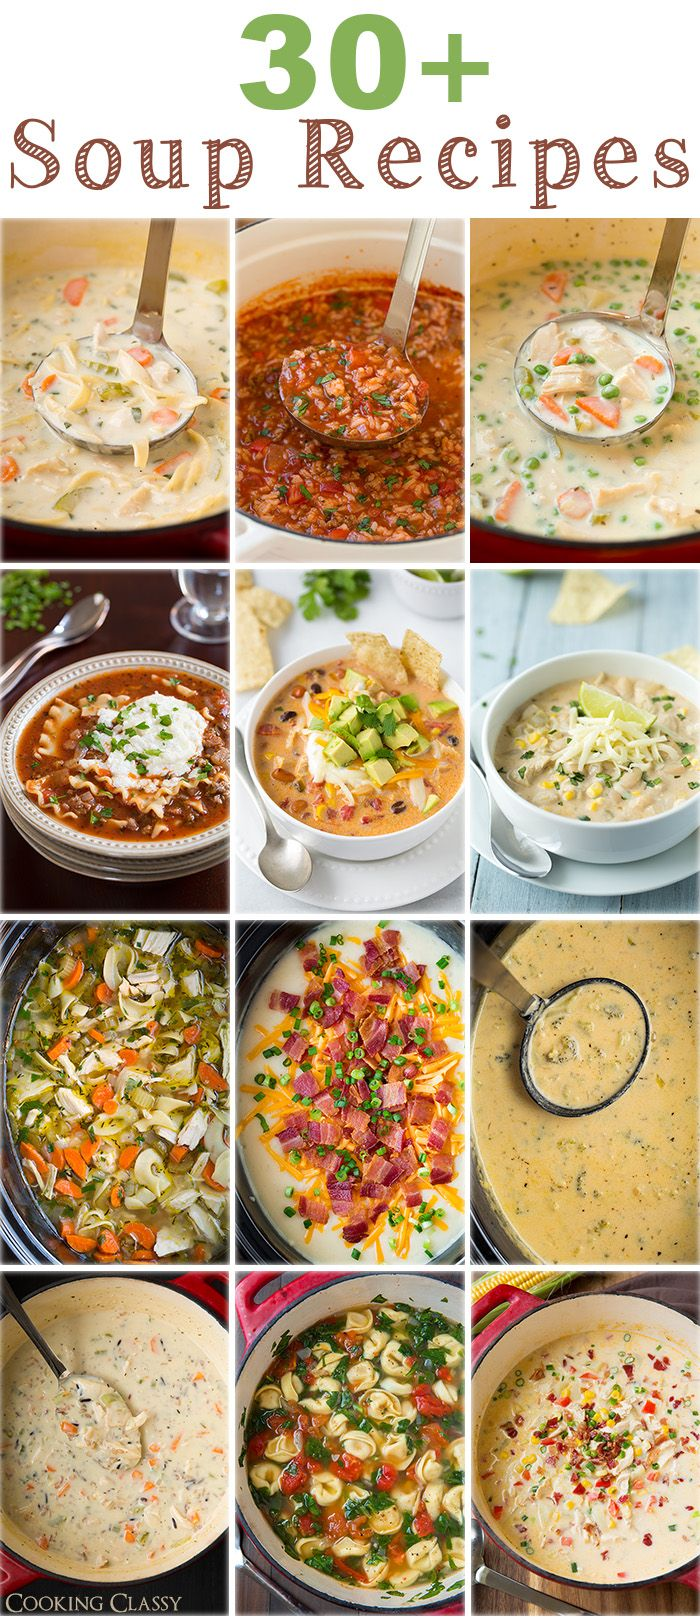 30+ soup recipes from Cooking Classy - just what you'll need for the cold fall and winter ahead. I love all of them! #soup #recipe #fall